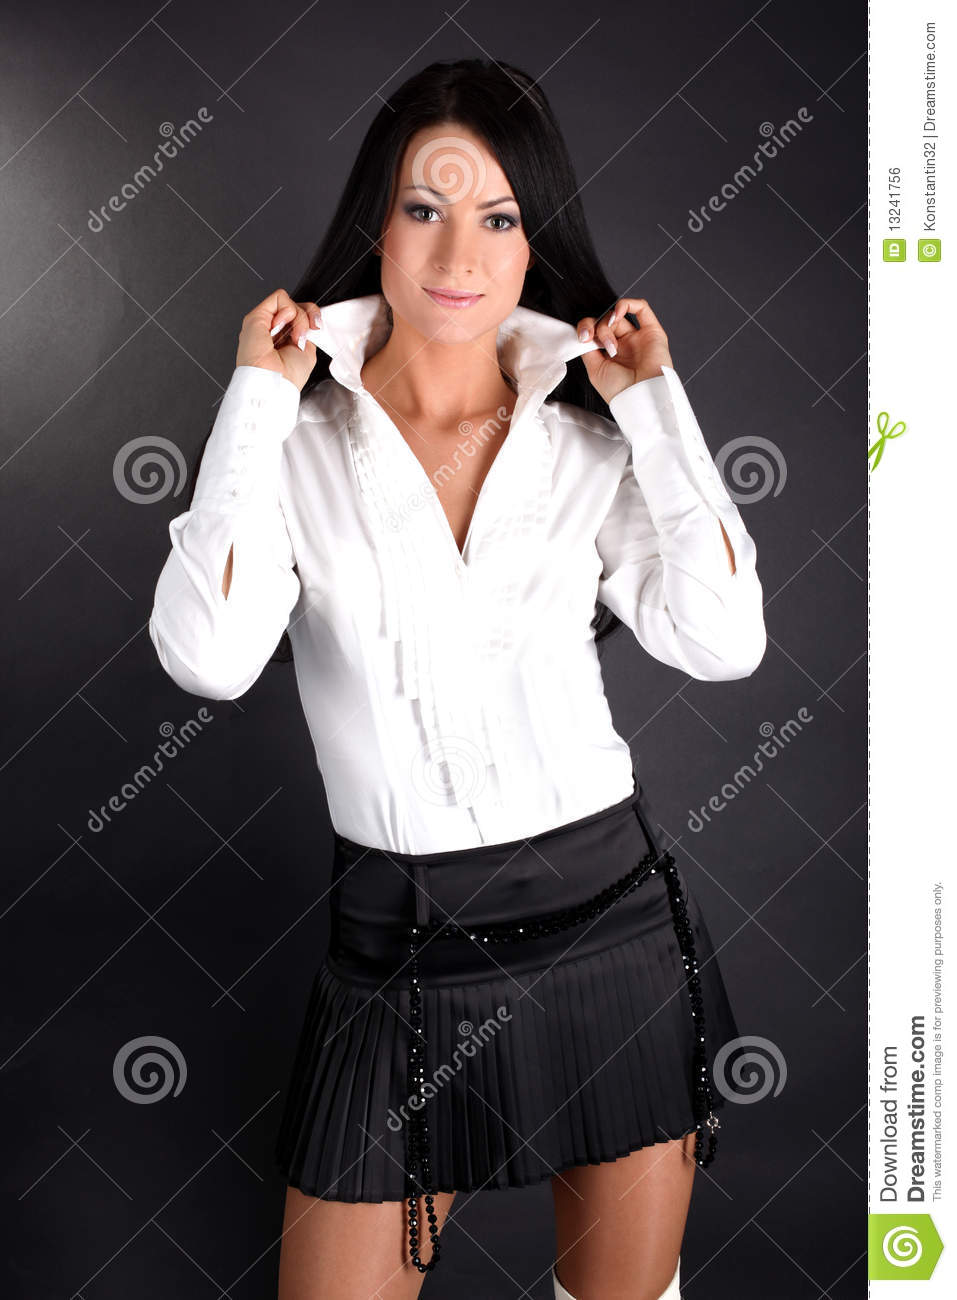 Creative Woman In White Shirt And Black Skirt  Stock Photo  Konstantin32